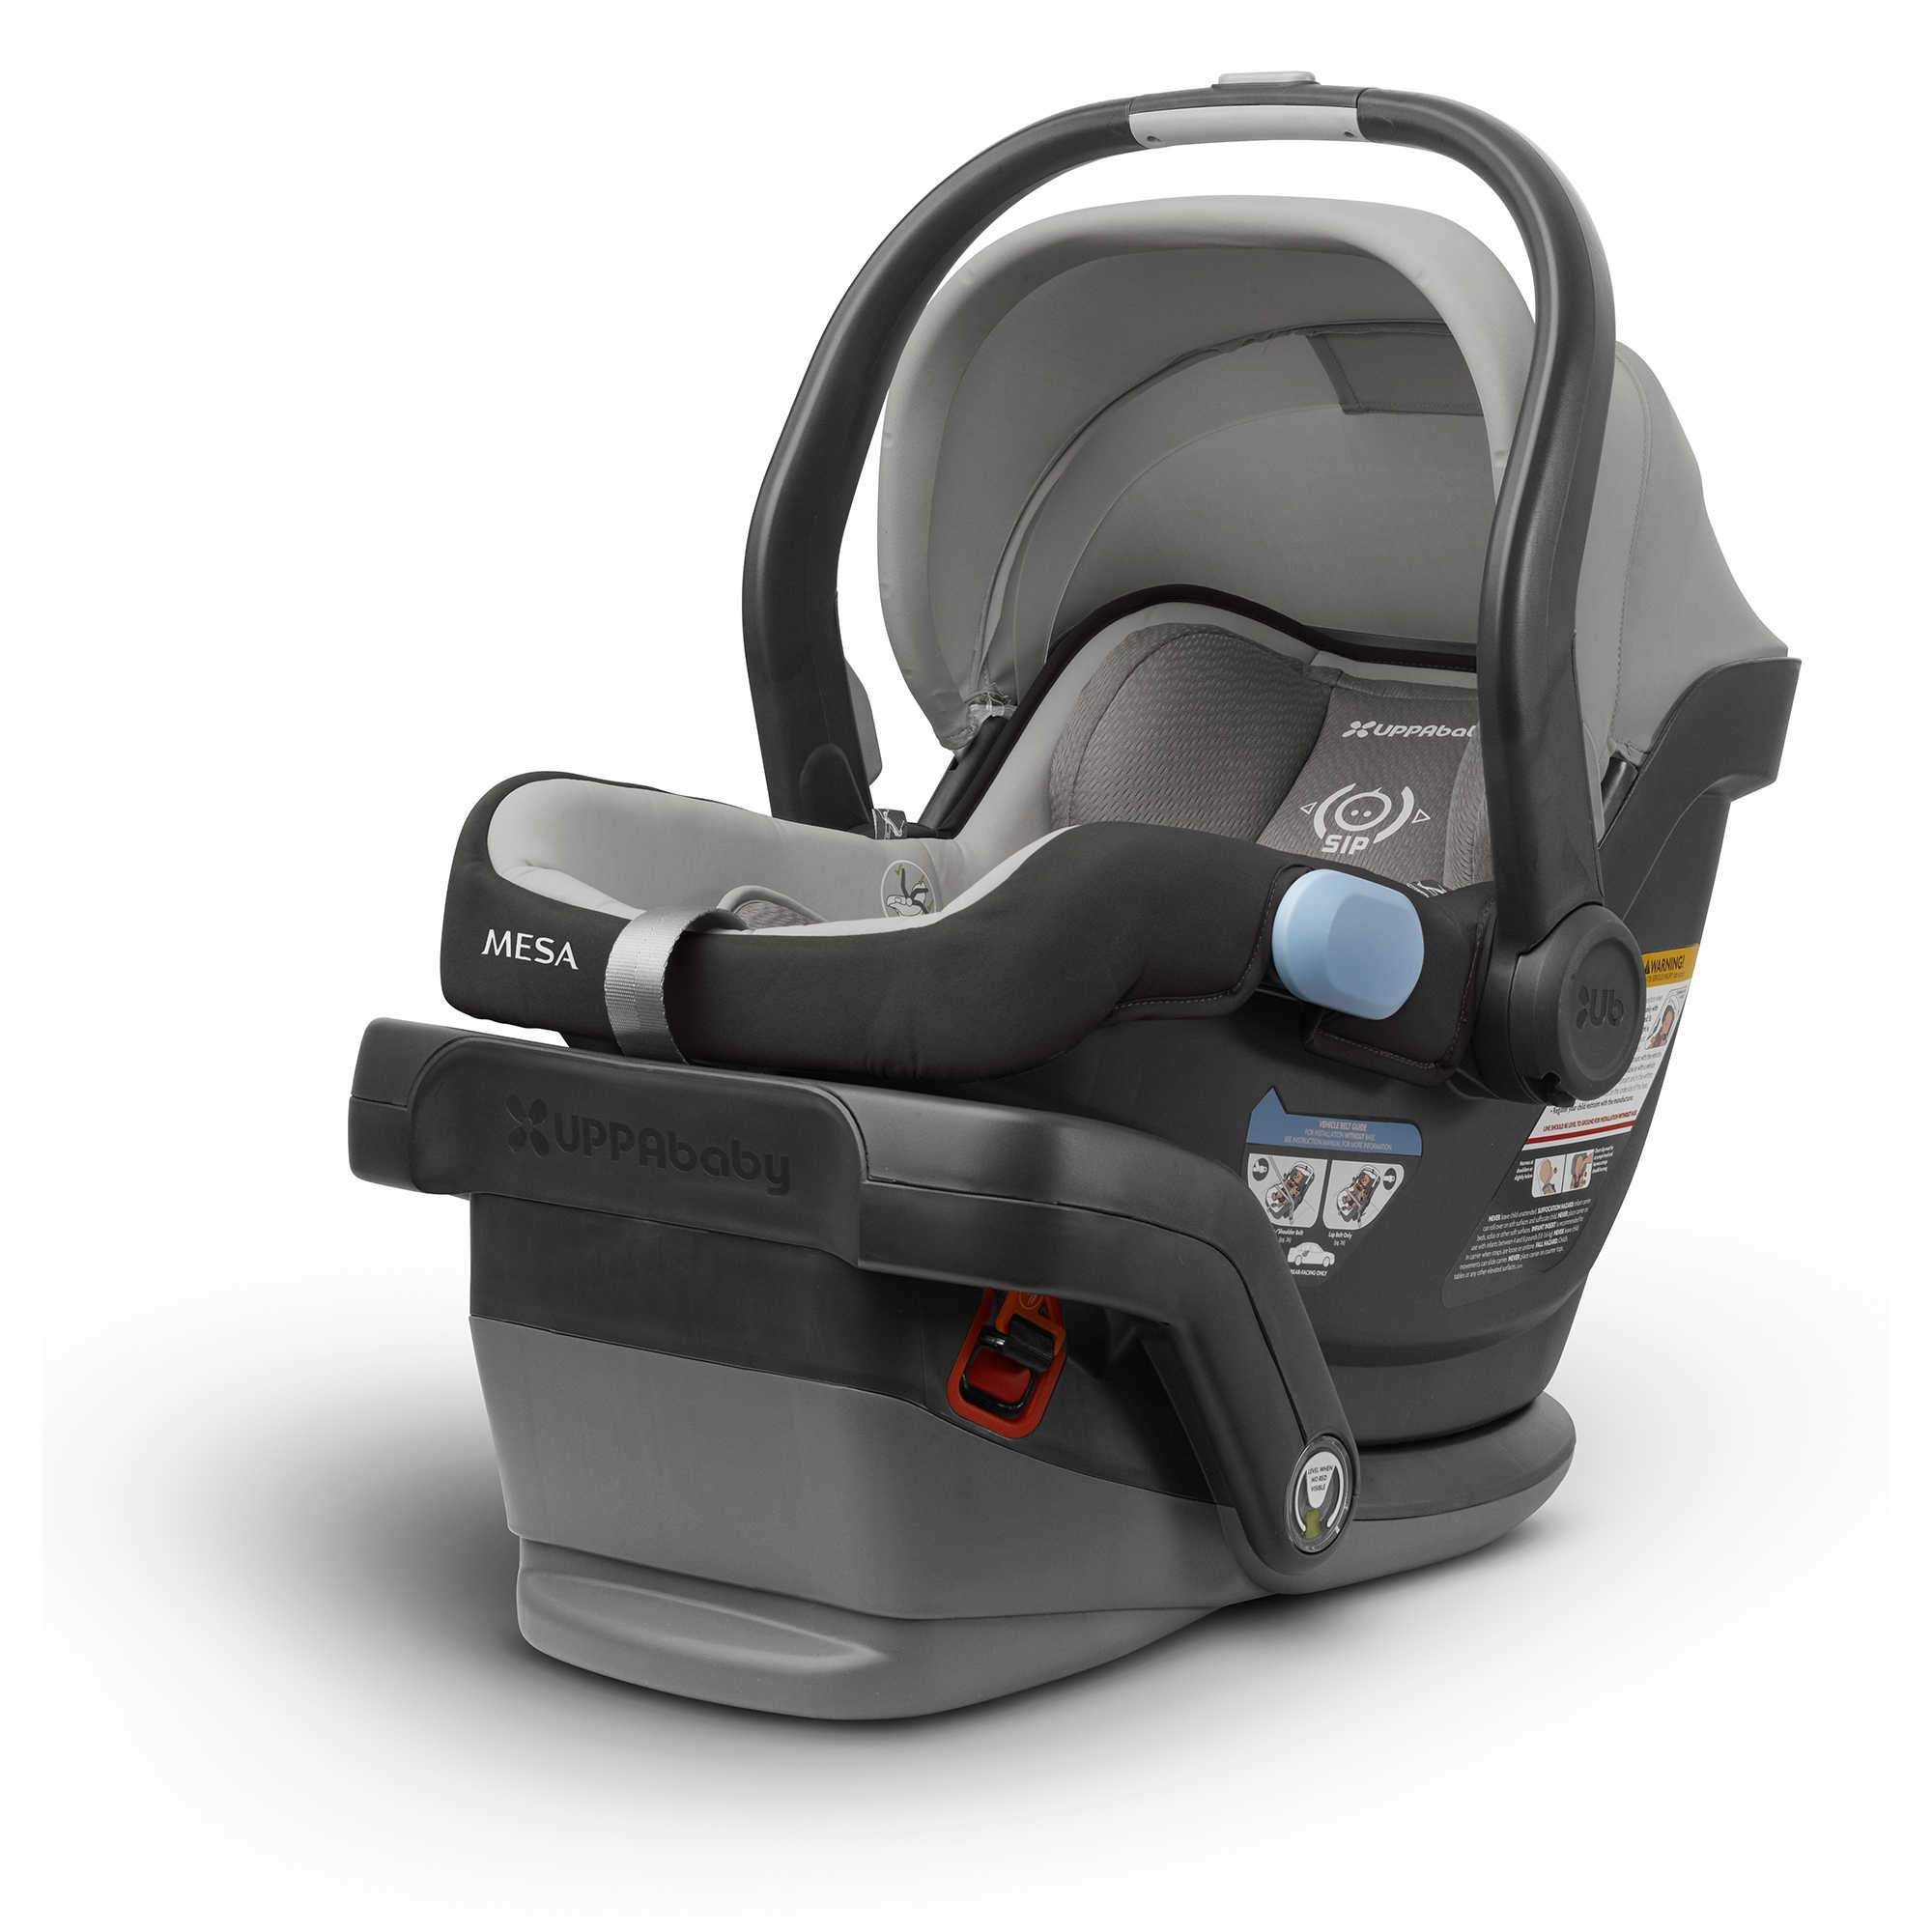 2020 UPPAbaby MESA Infant Car Seat and Base Baby car